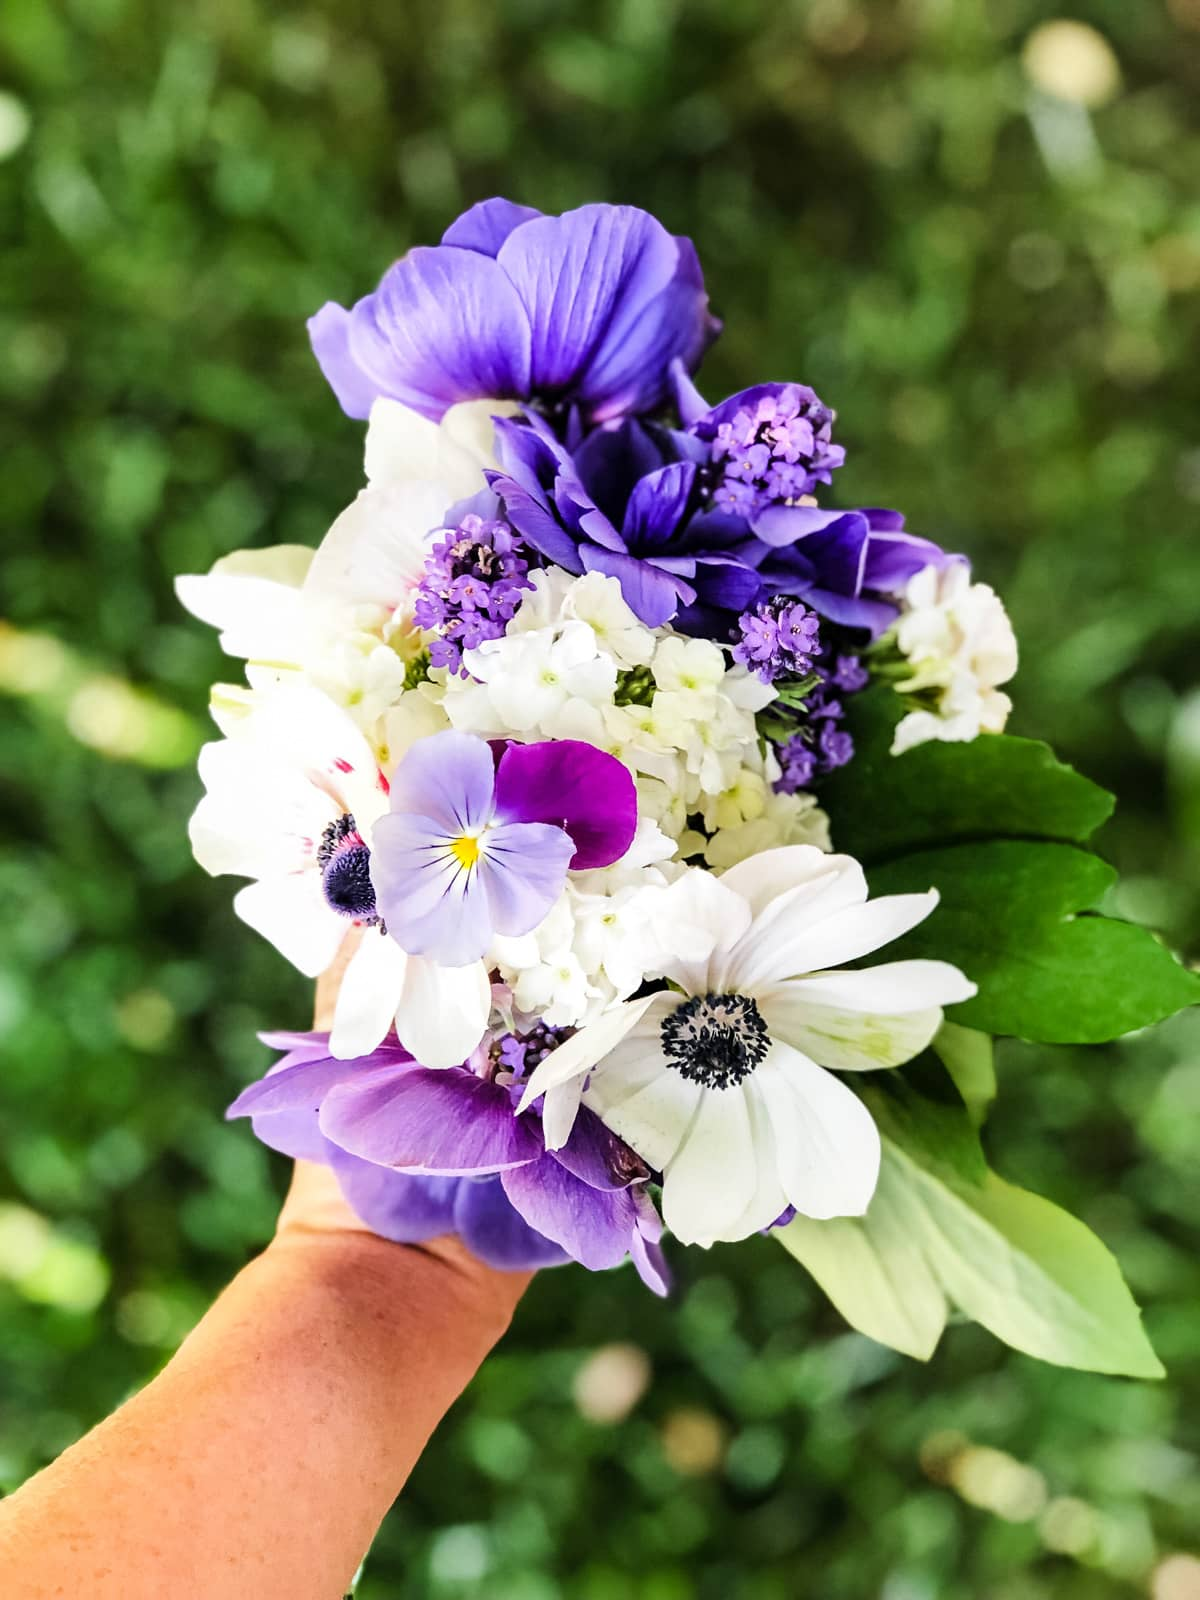 Bouquet from a Cut Flower Garden